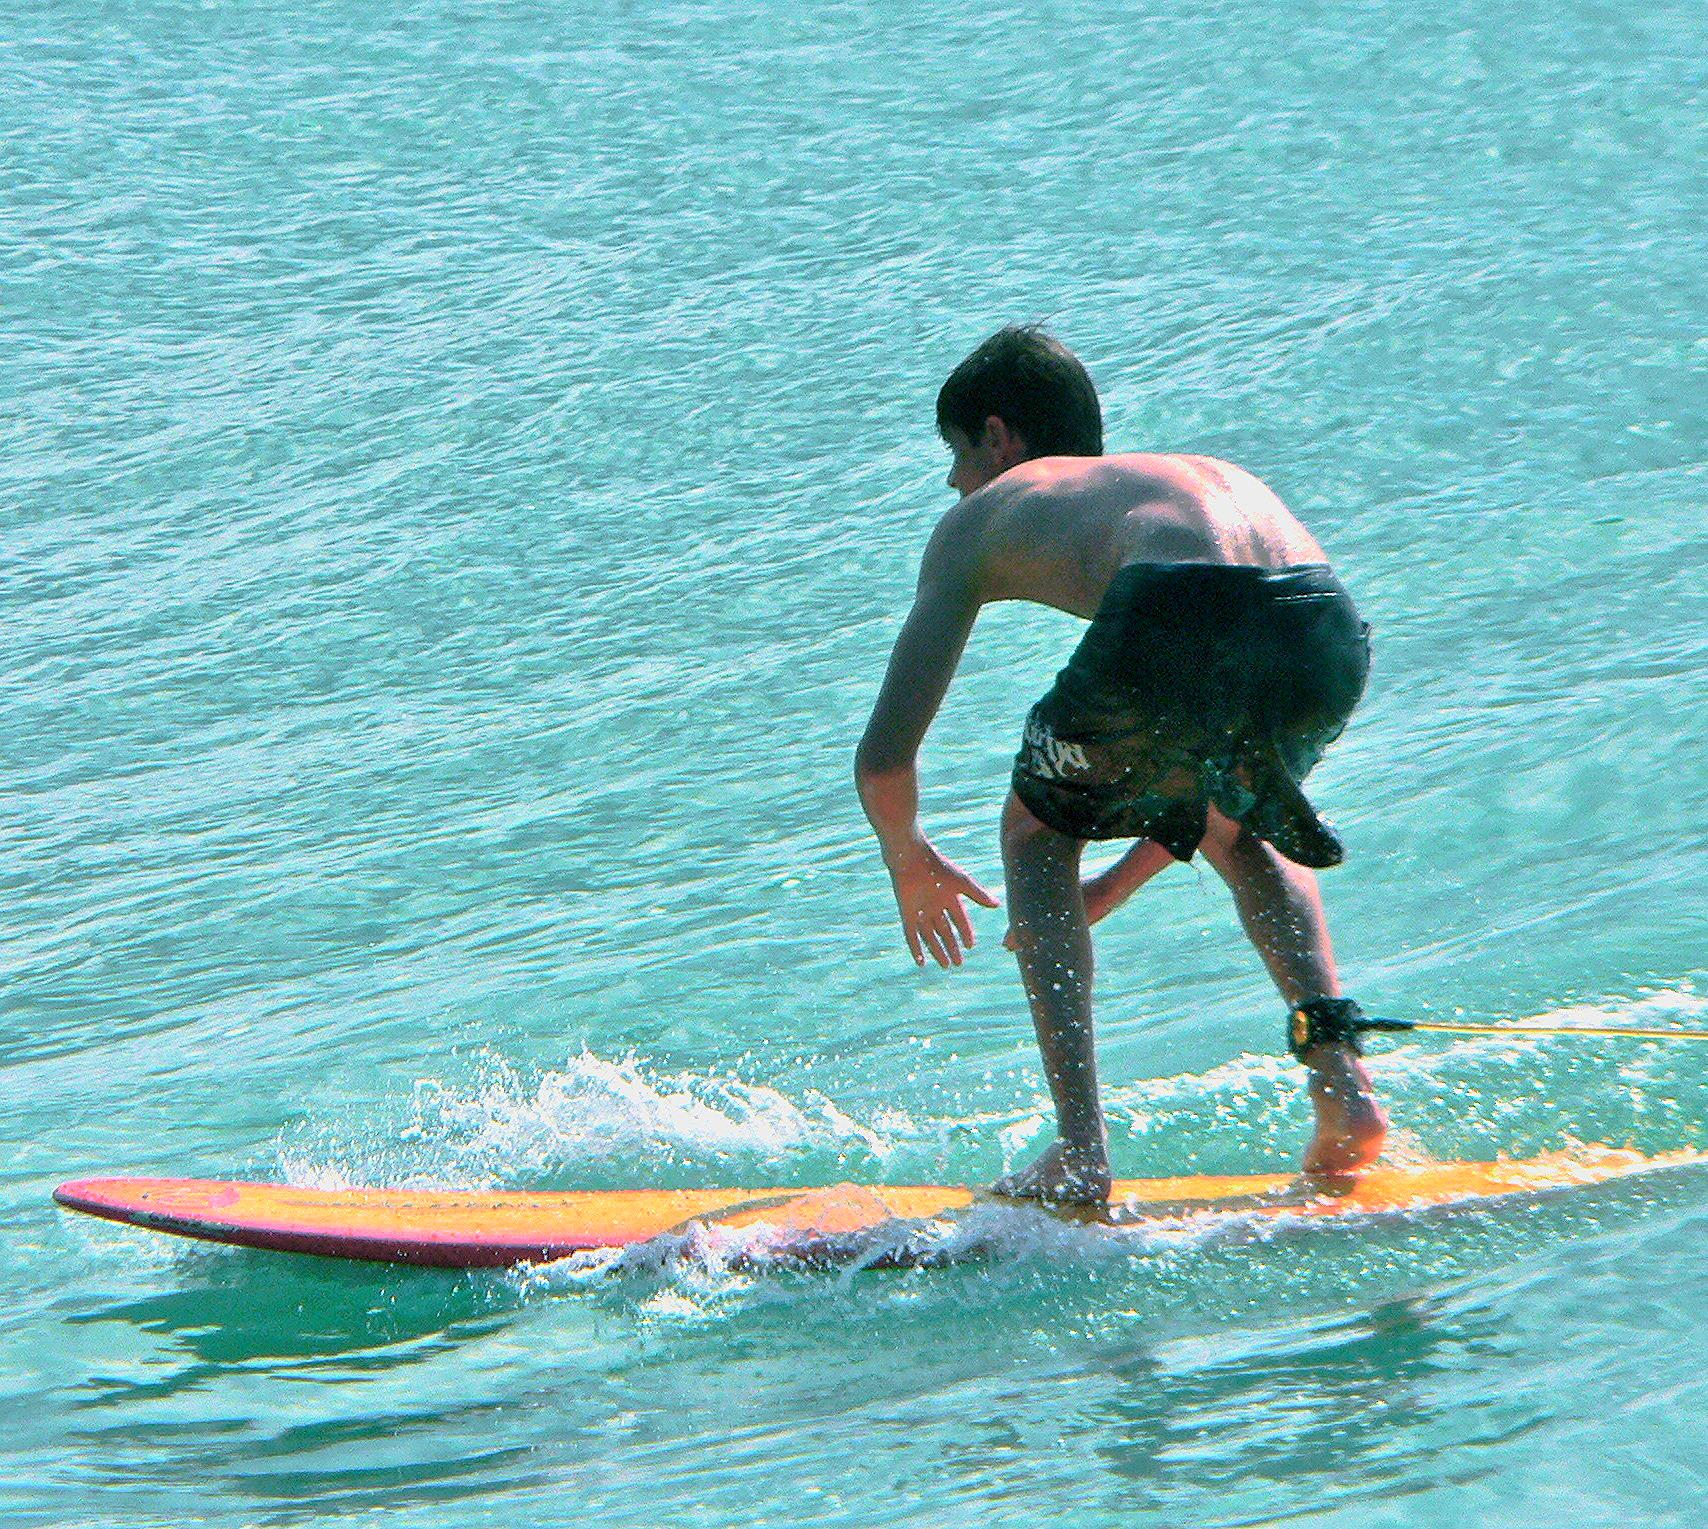 Seth Koller surfing Turtle Bay Hawaii